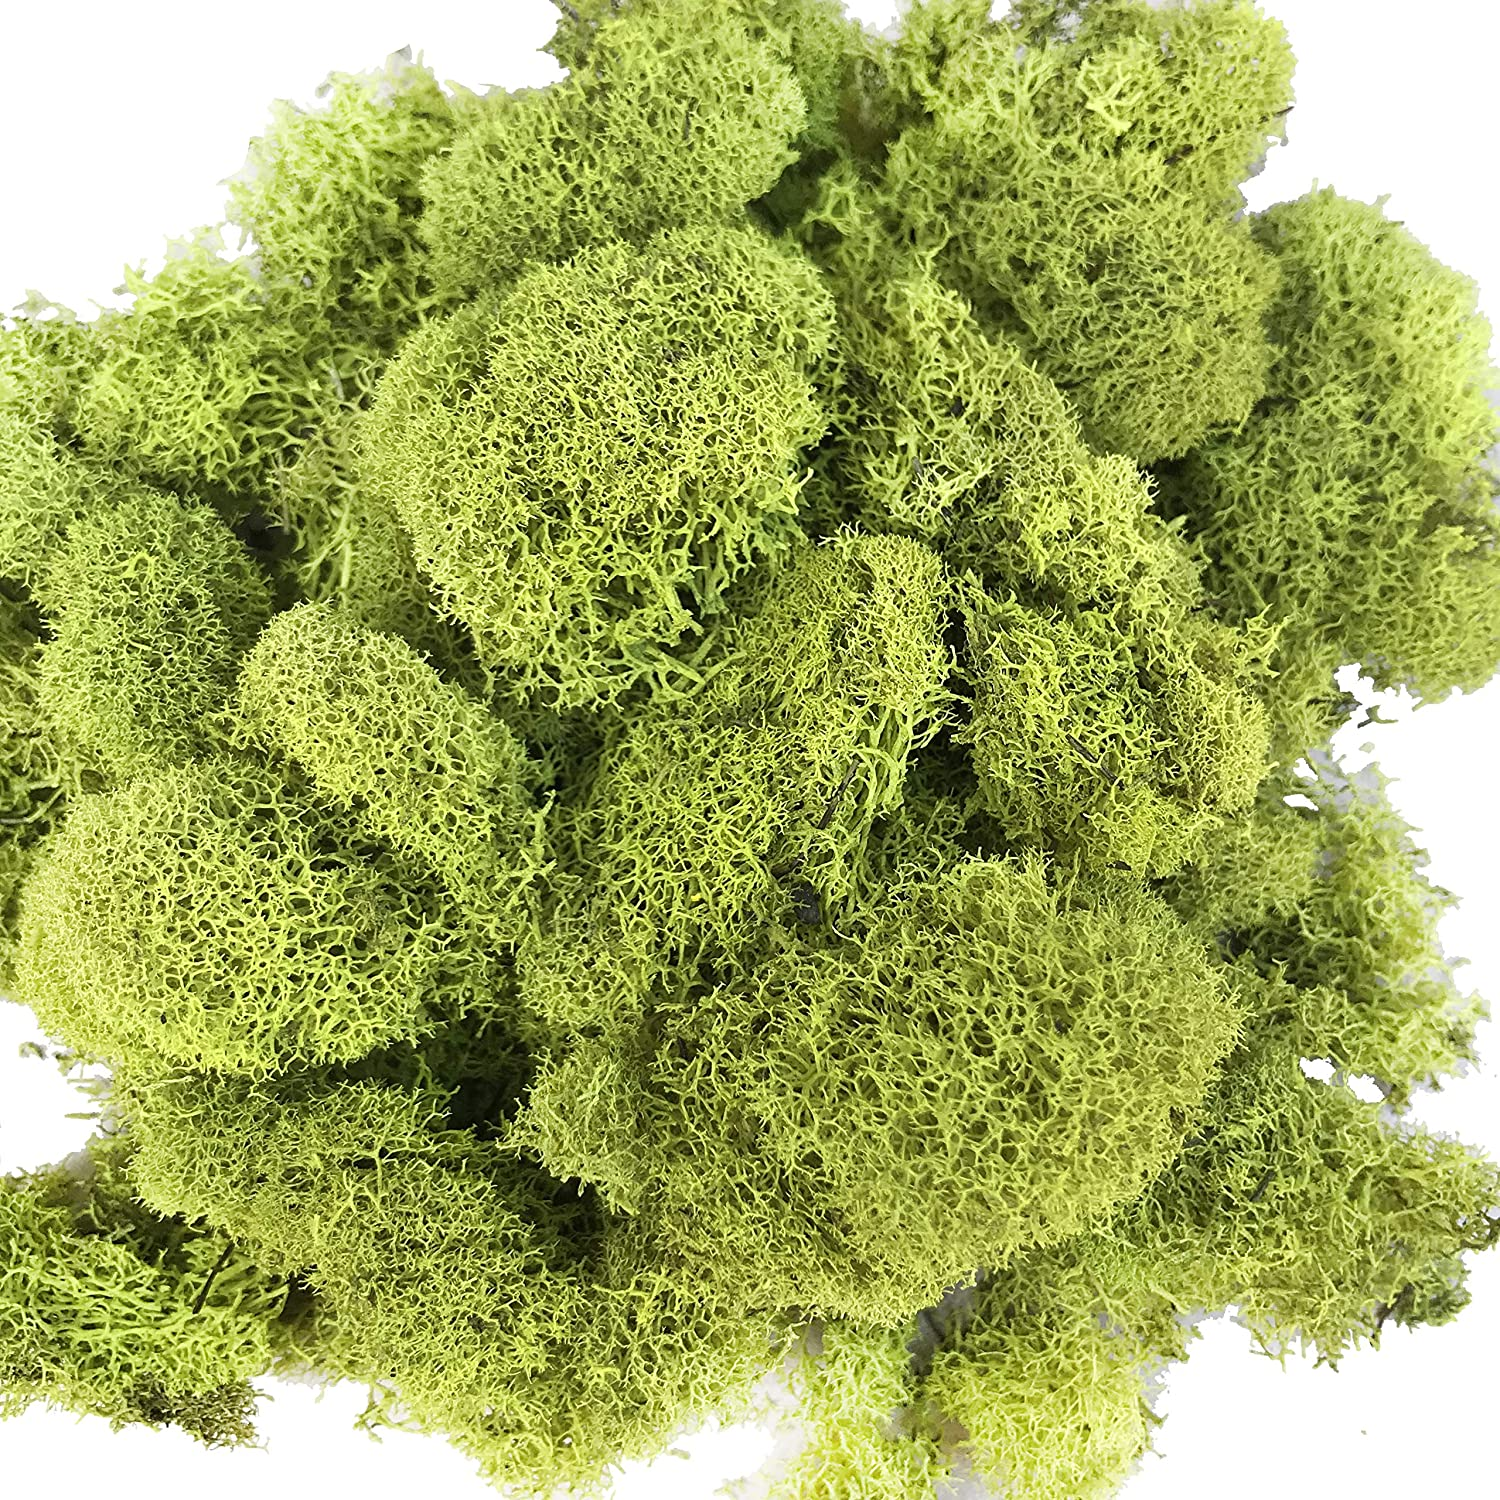 Pack of 3oz Reindeer Moss Preserved Floral Moss for Fairy Gardens, Terrariums, Any Craft or Floral Project or Wedding Other Arts(Chartreuse) DALAMODA FLORAL